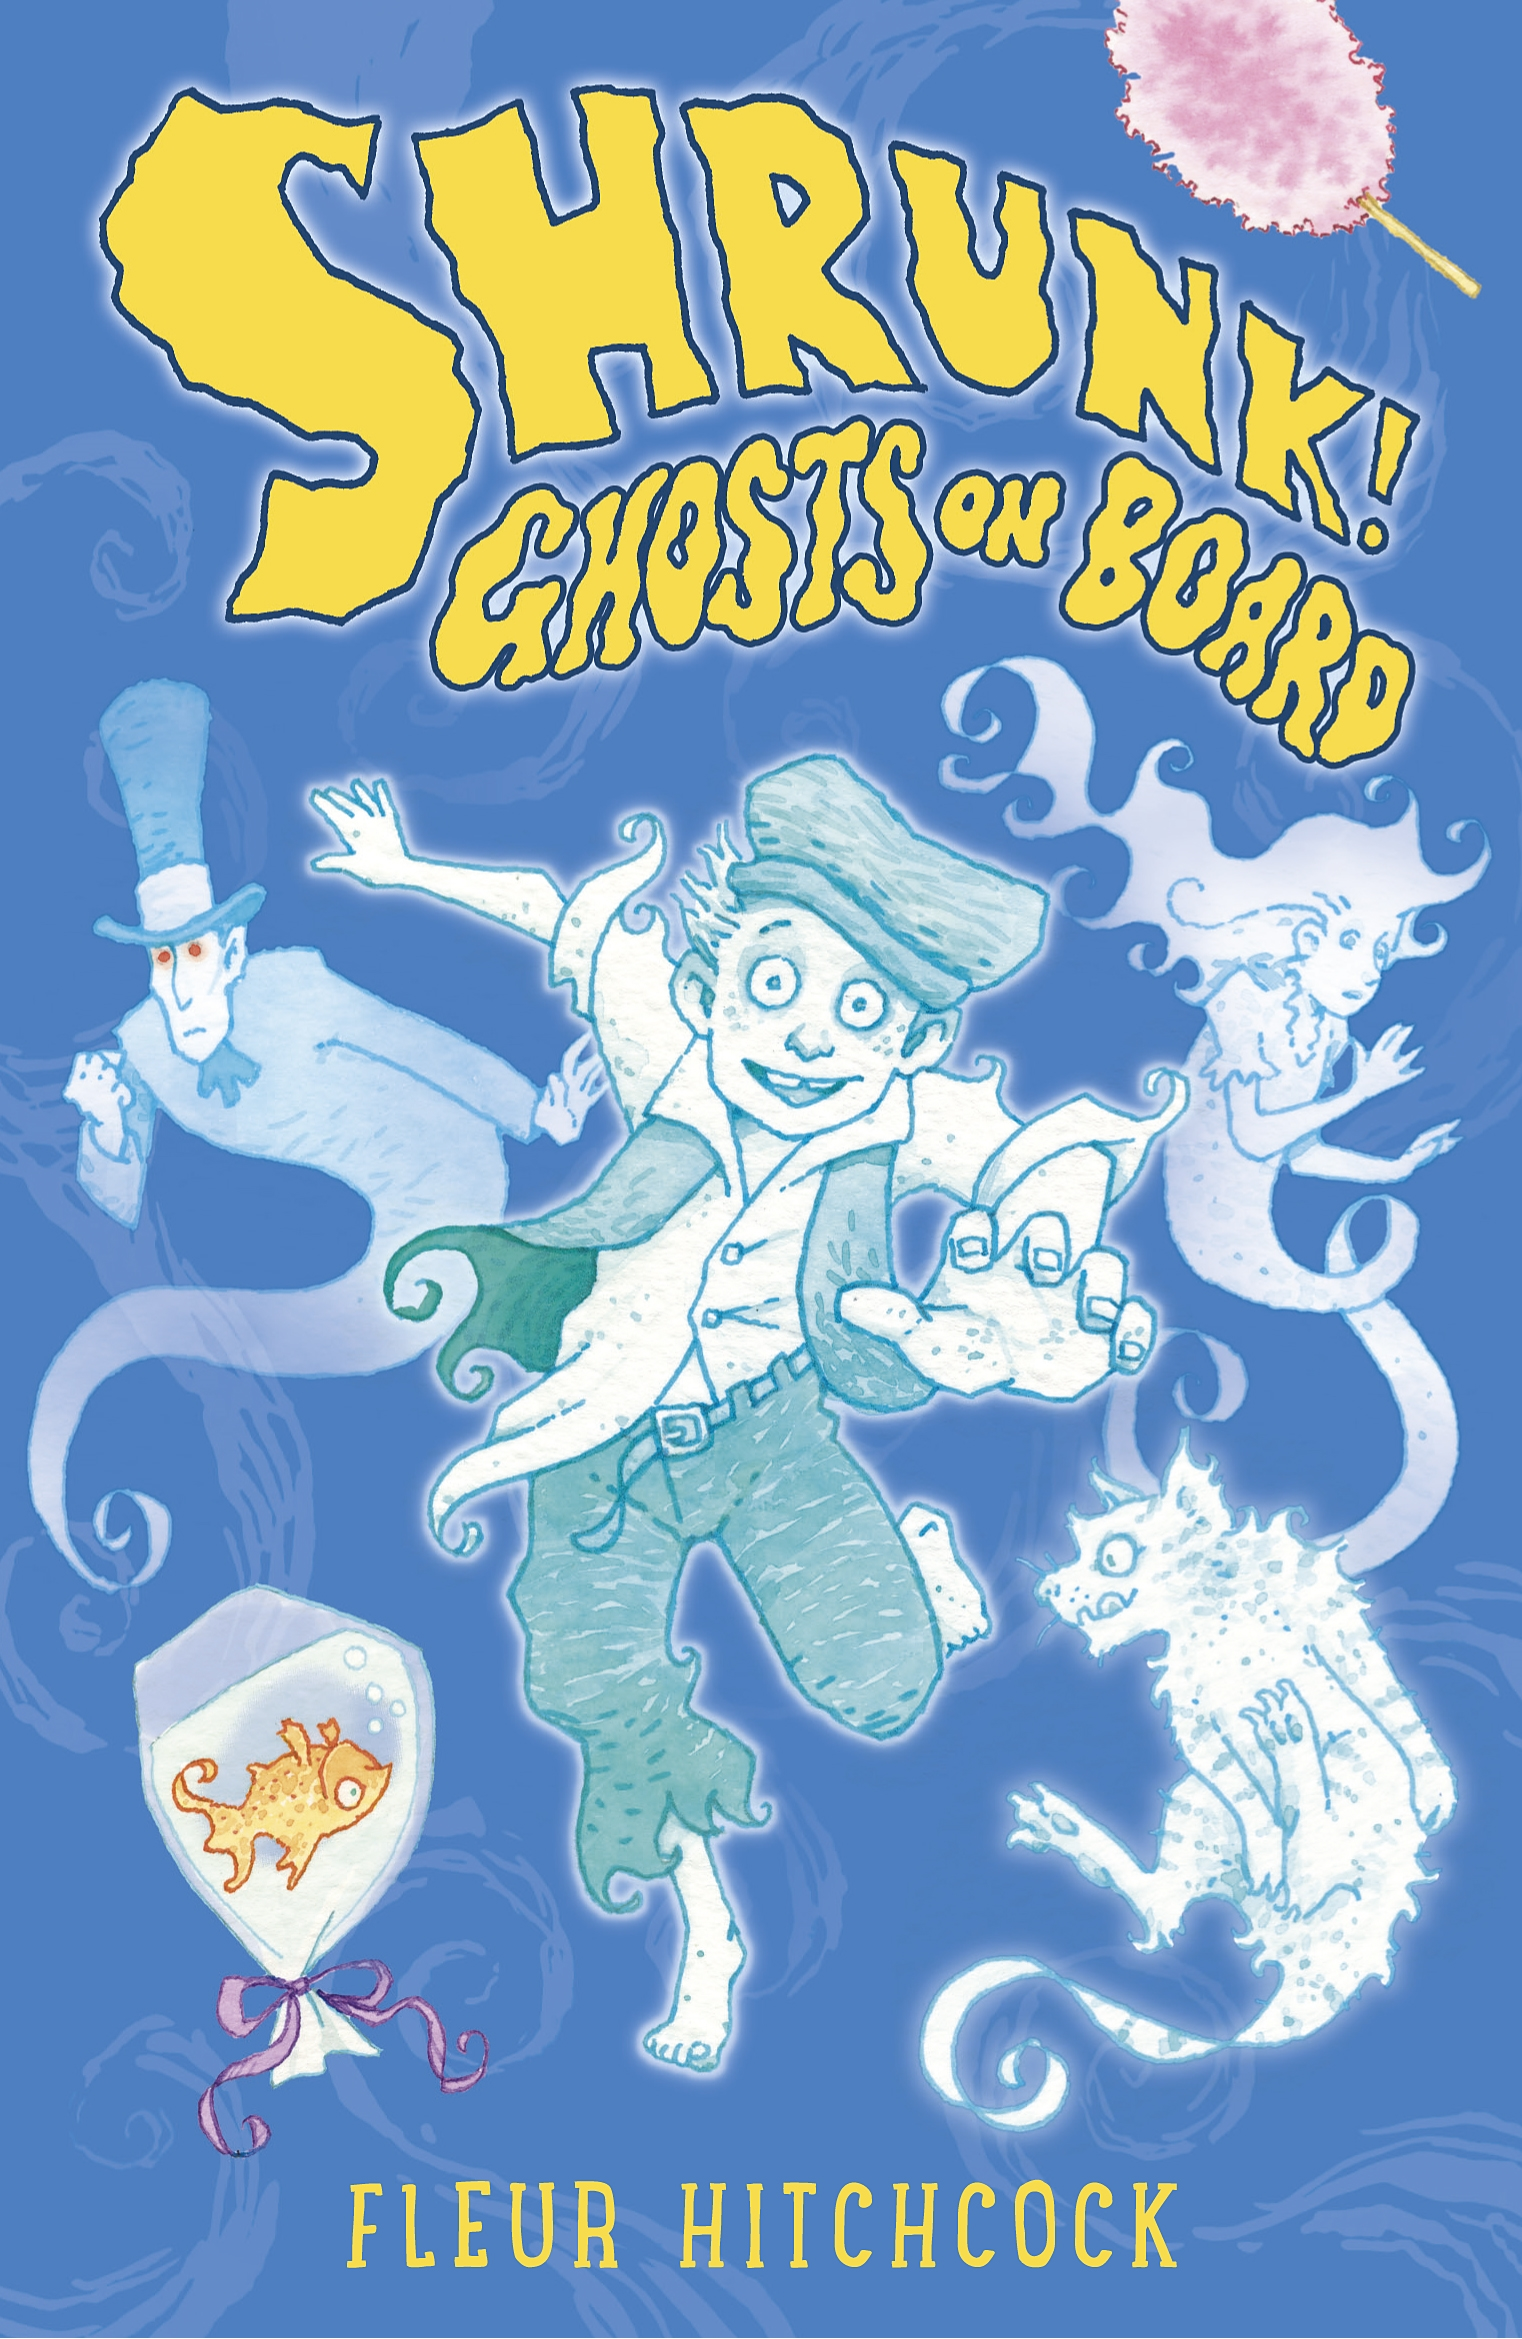 Ghosts on Board: A SHRUNK! Adventure by Fleur Hitchcock